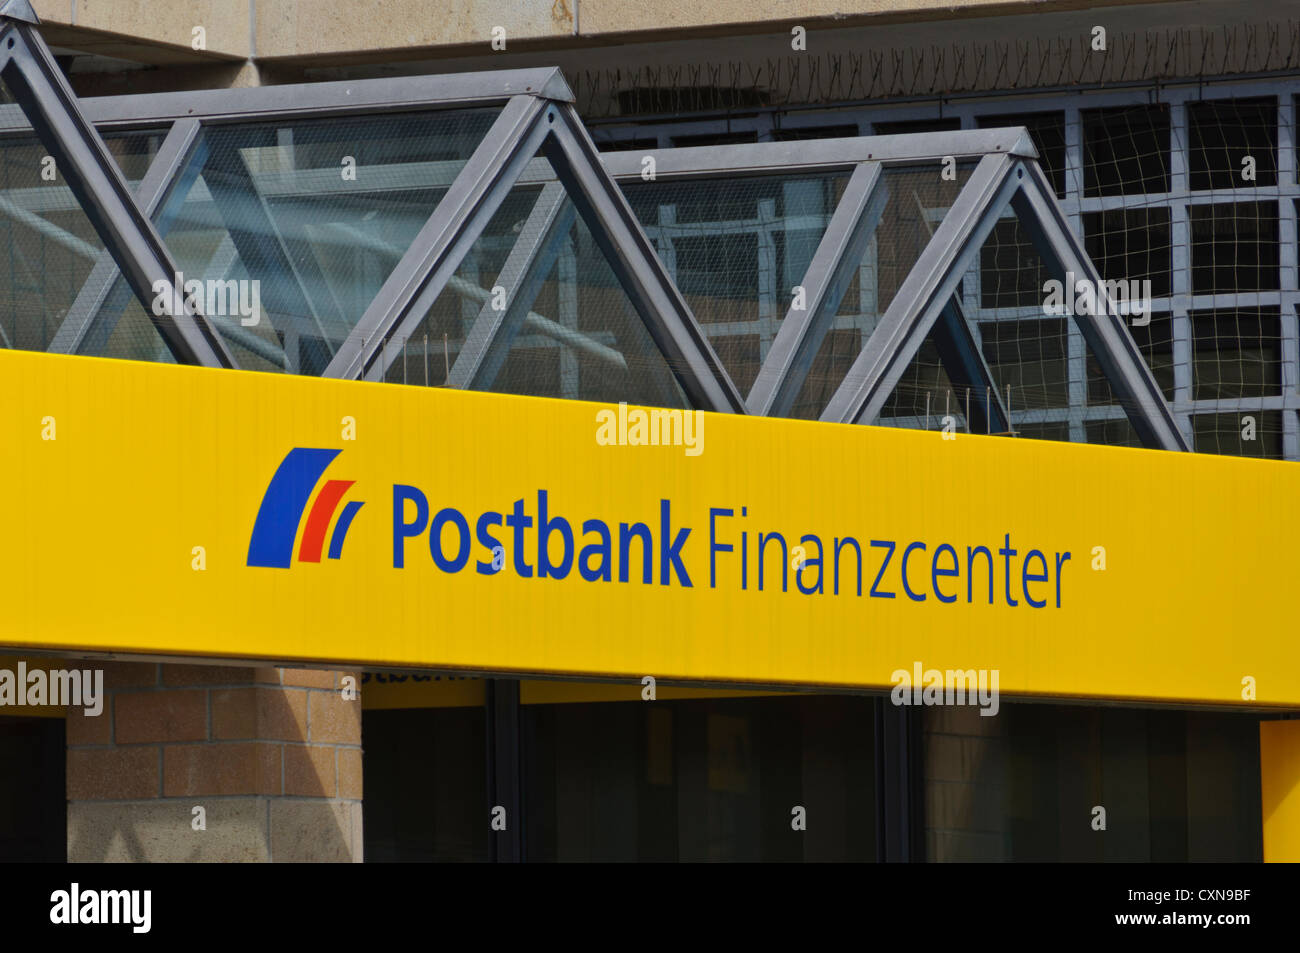 Postbank Finanzcenter, finance centre, sign and logo, entrance of a German bank branch, Heilbronn, South Germany - Stock Image